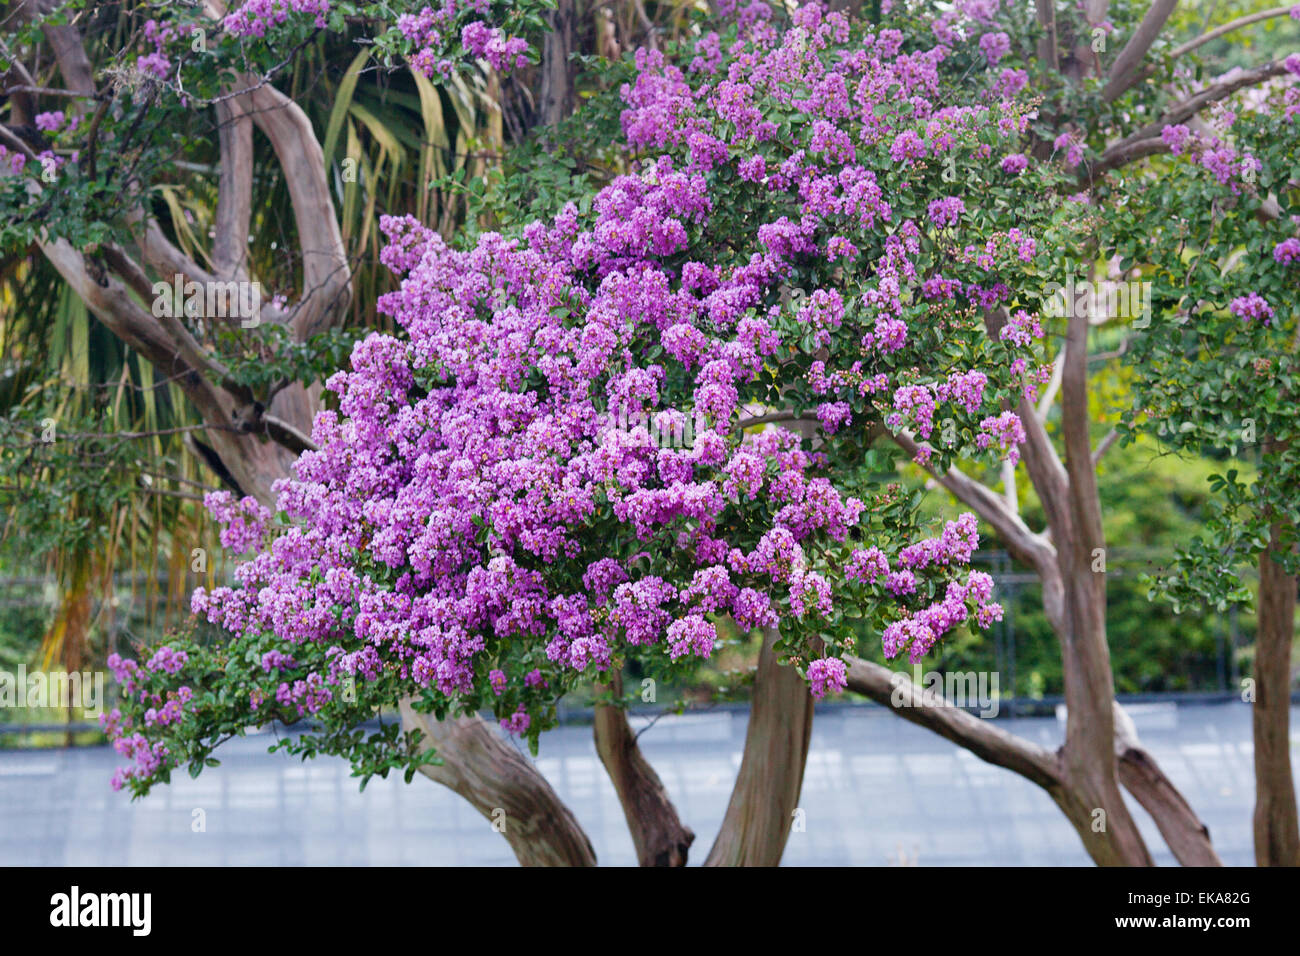 Green Trees With Purple Flowers In The Park Stock Photo 80745800